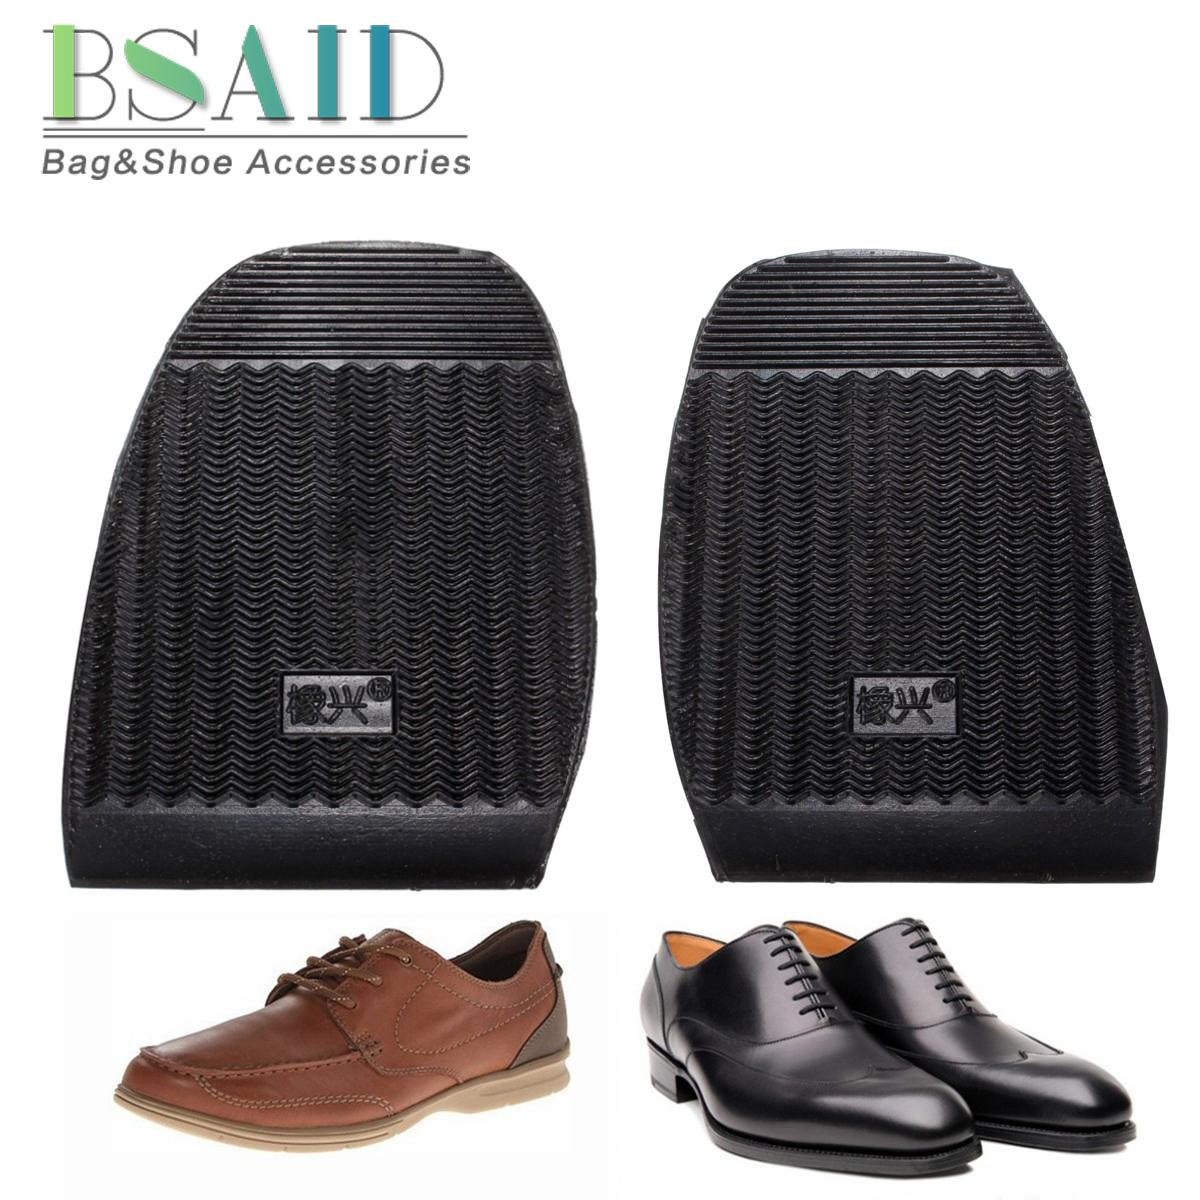 Bsaid 1 Pair Outsoles Rubber Non Slip Men S Shoe Forefoot